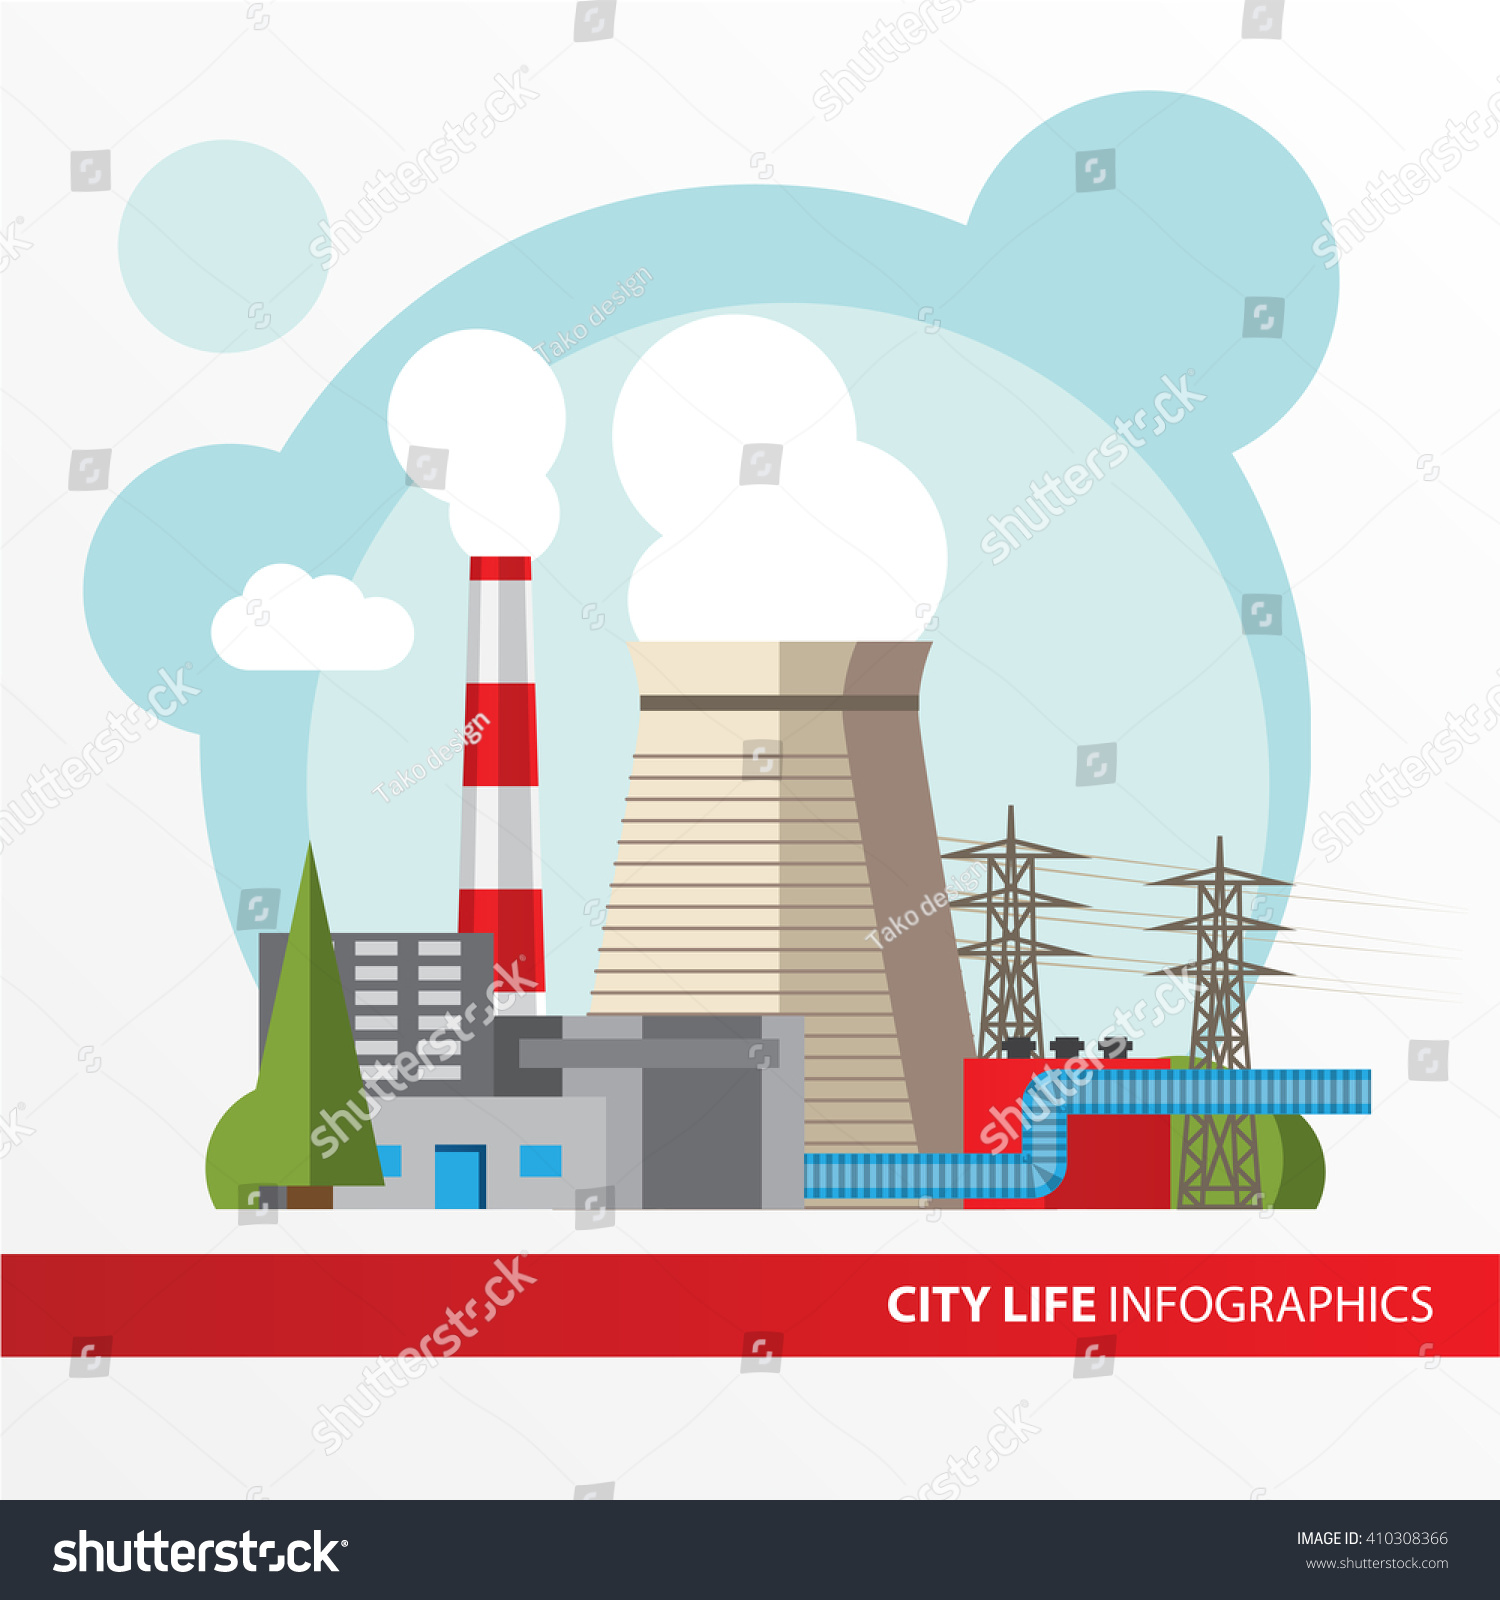 hight resolution of thermal power station colorful illustration in a flat style city infographics set all